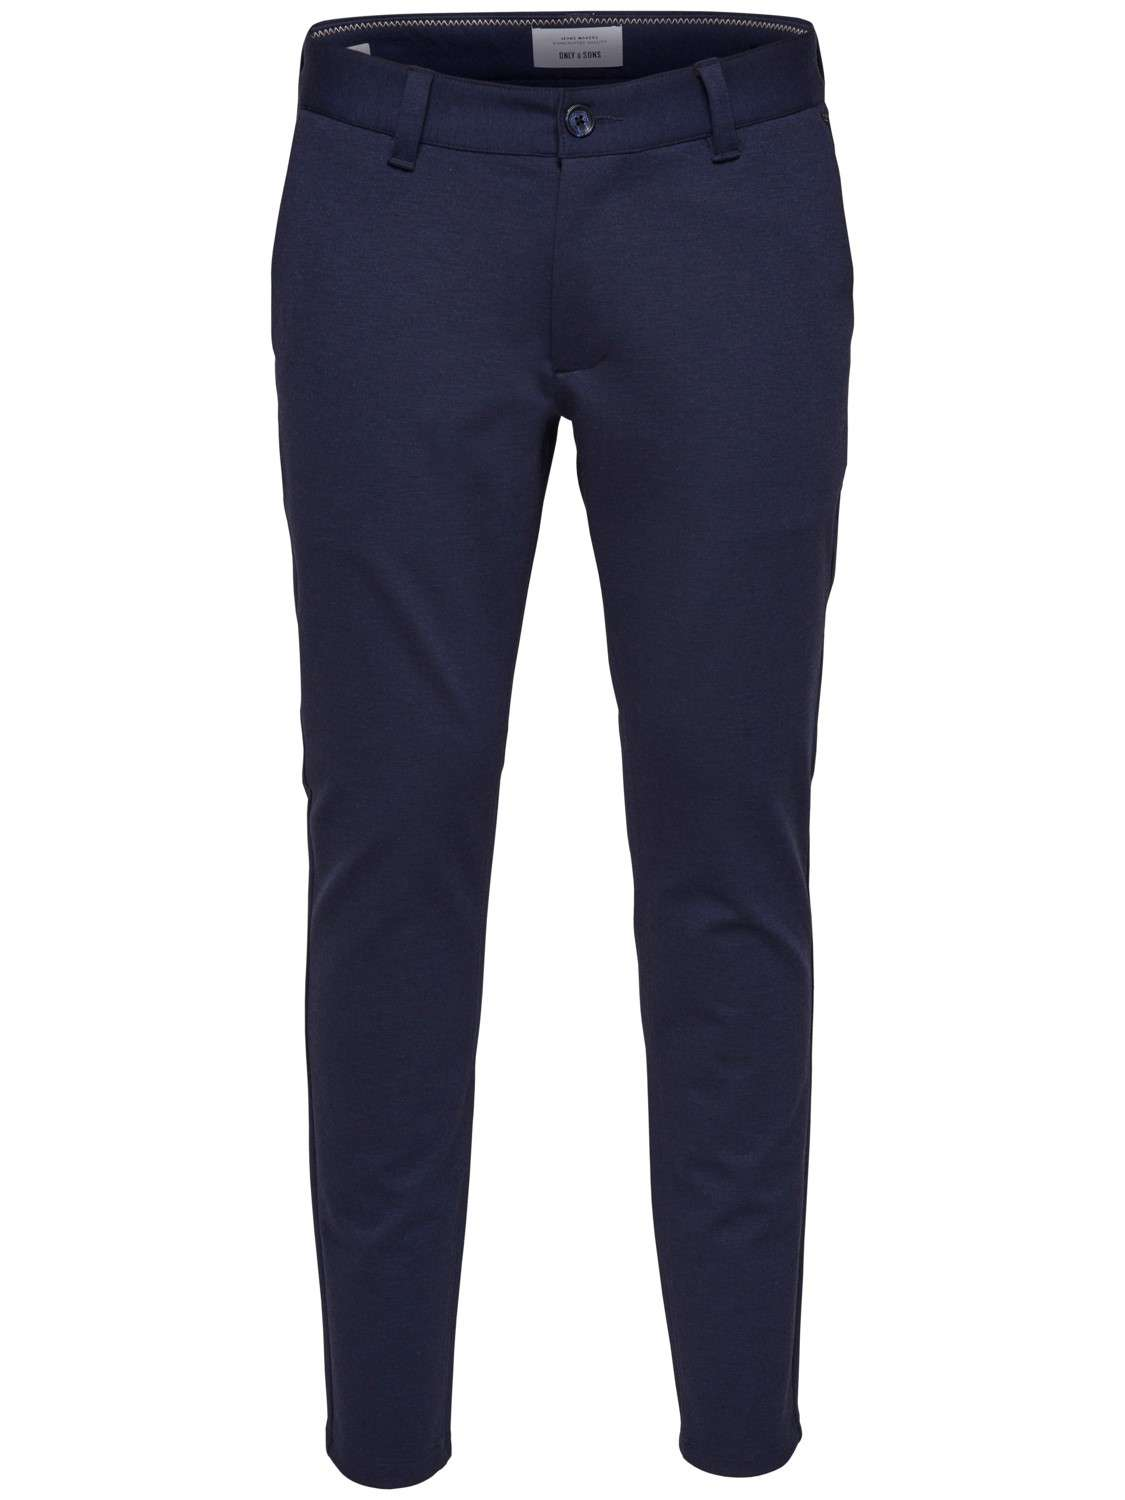 Only & Sons - Navy - Mark Pant